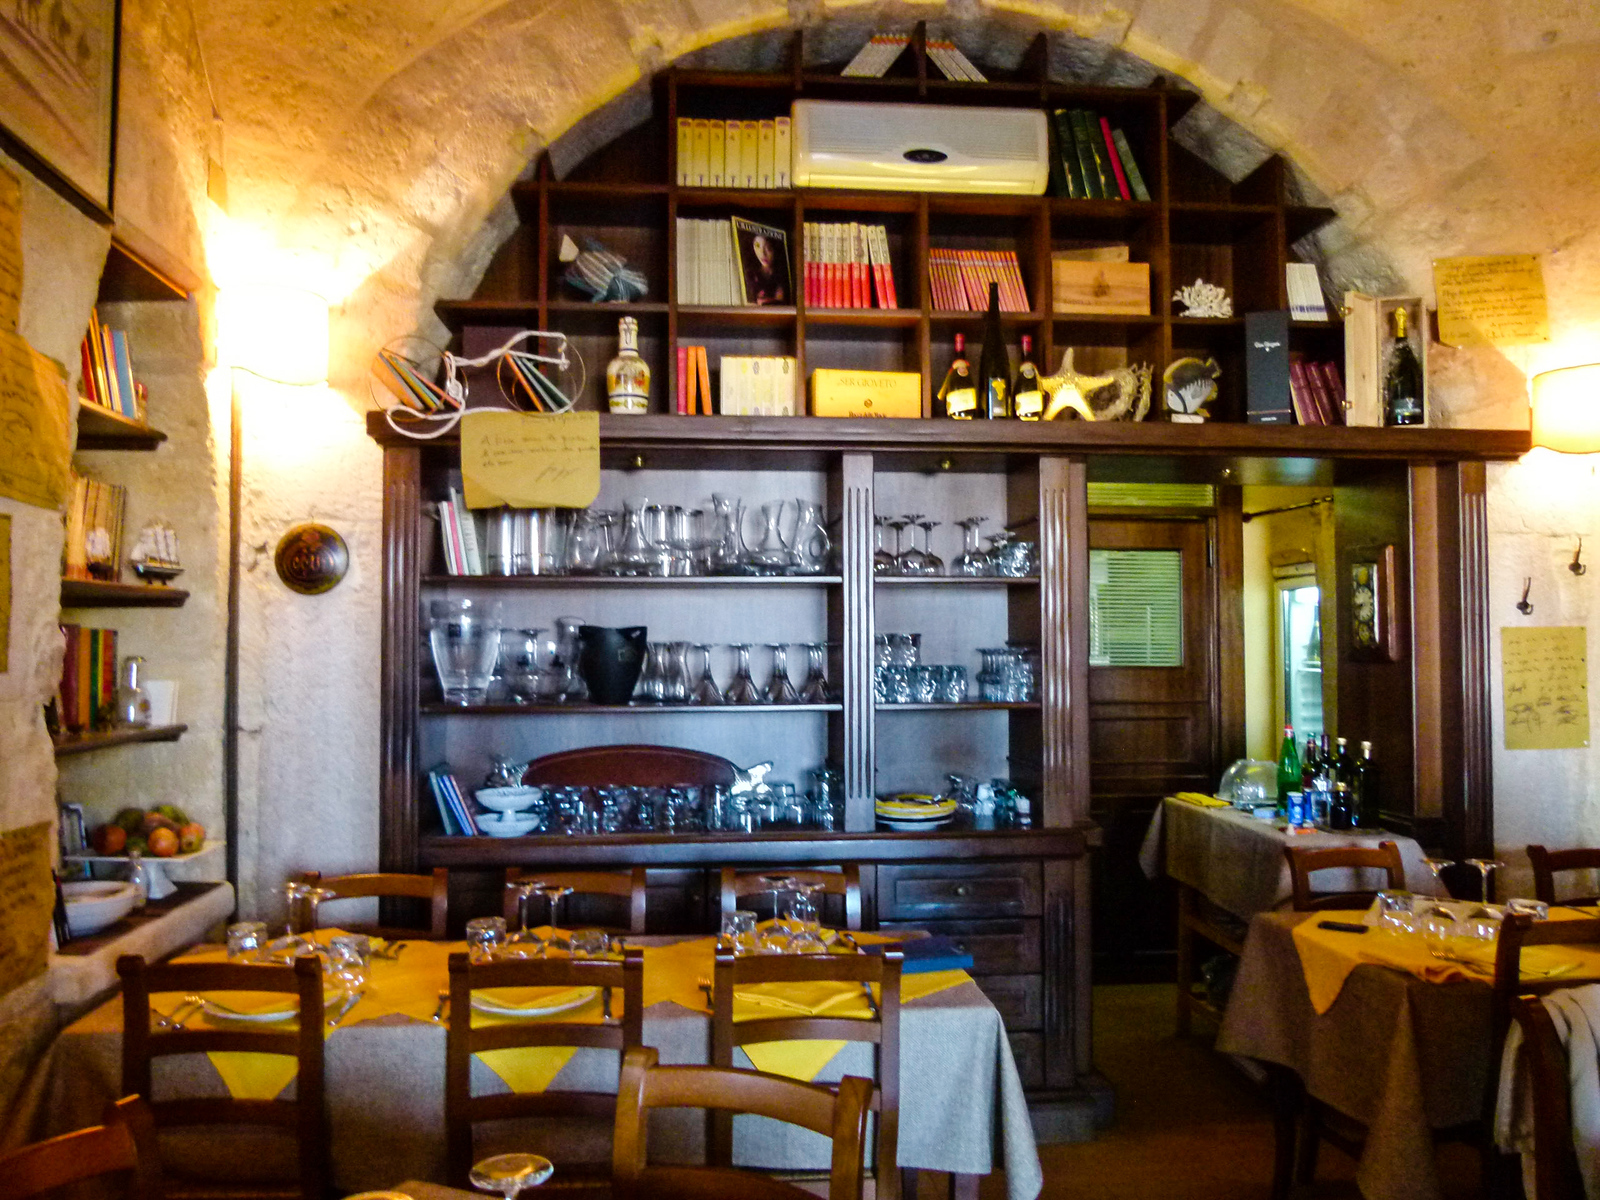 Ristorant Pesevenghi offers outstanding food in an intimate setting. Be sure to dine here when you visit Trani, Italy. #boomertravel #Italy #food